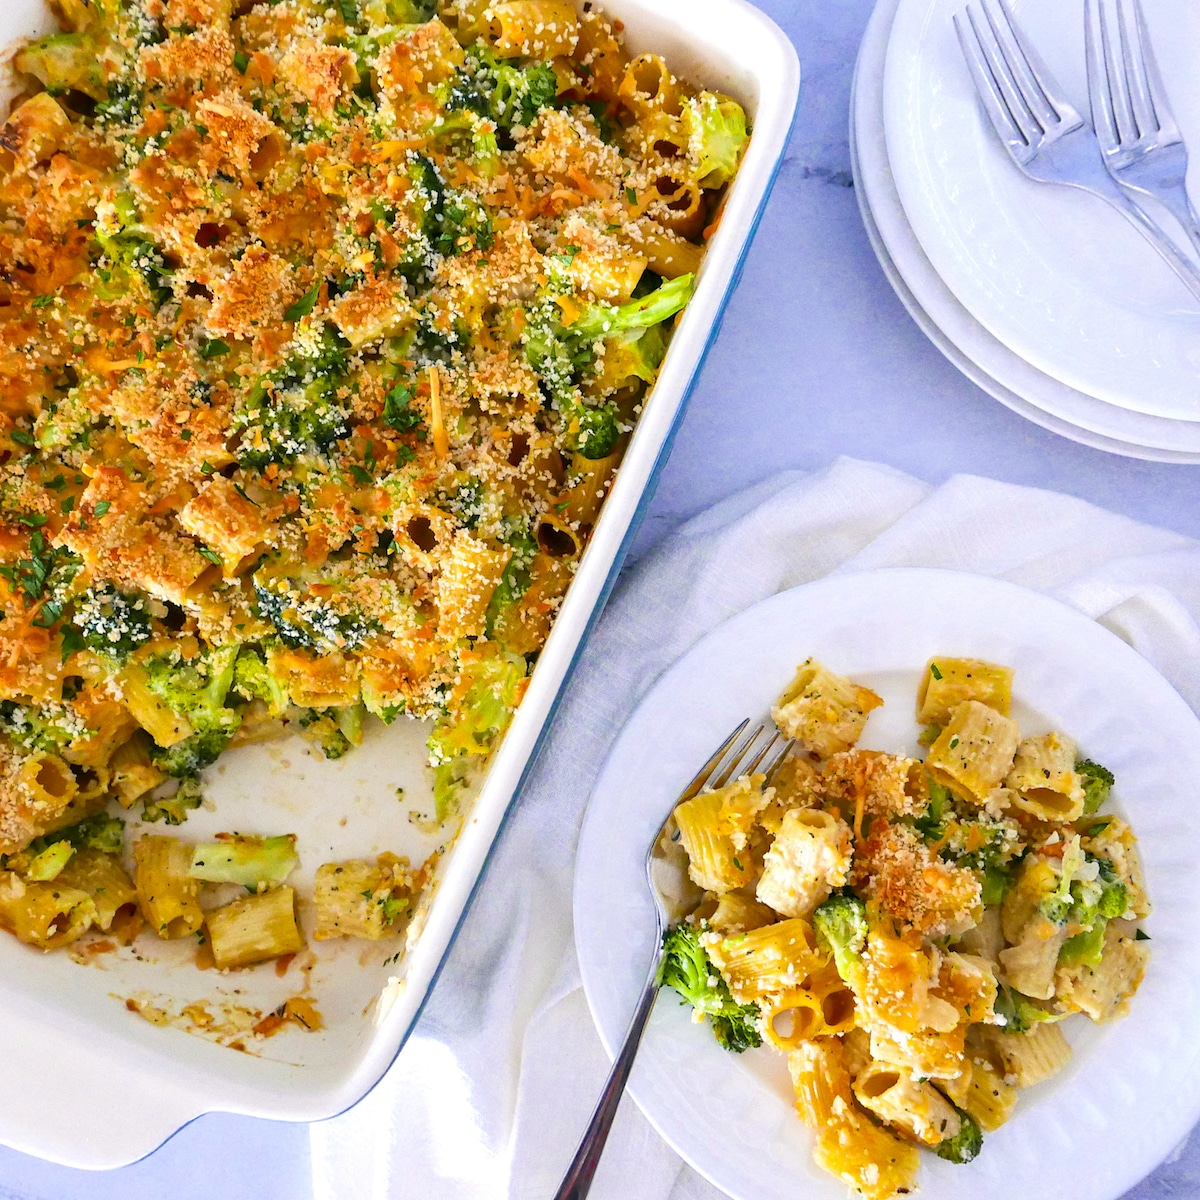 broccoli pasta bake on a white plate and in a baking dish with two forks and white napkin